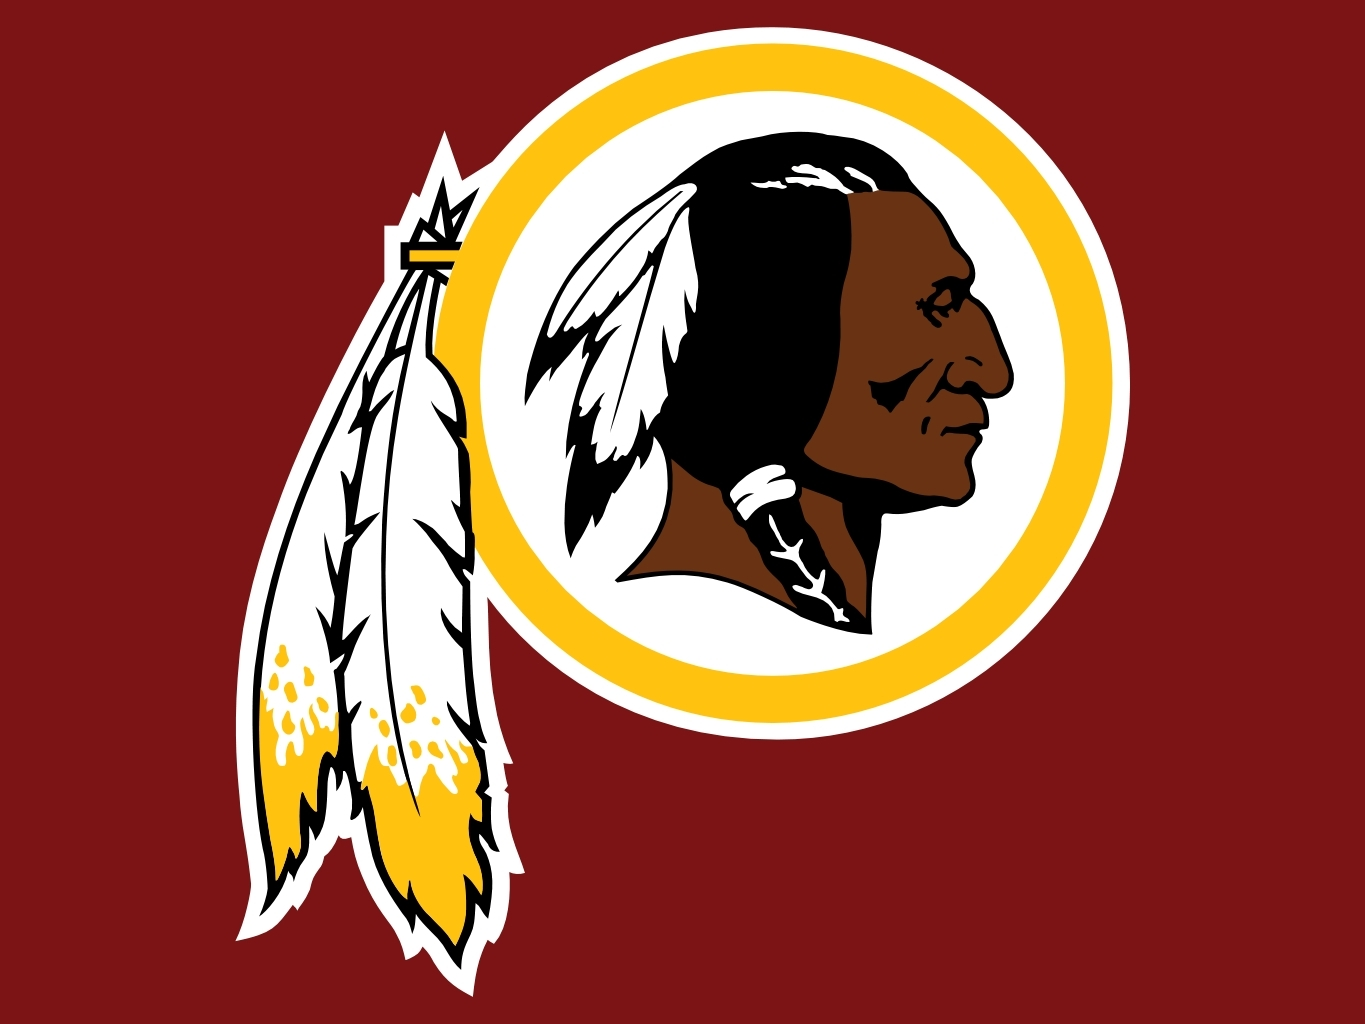 Cowboys vs redskins clipart picture stock Washington redskins clipart - ClipartFest picture stock